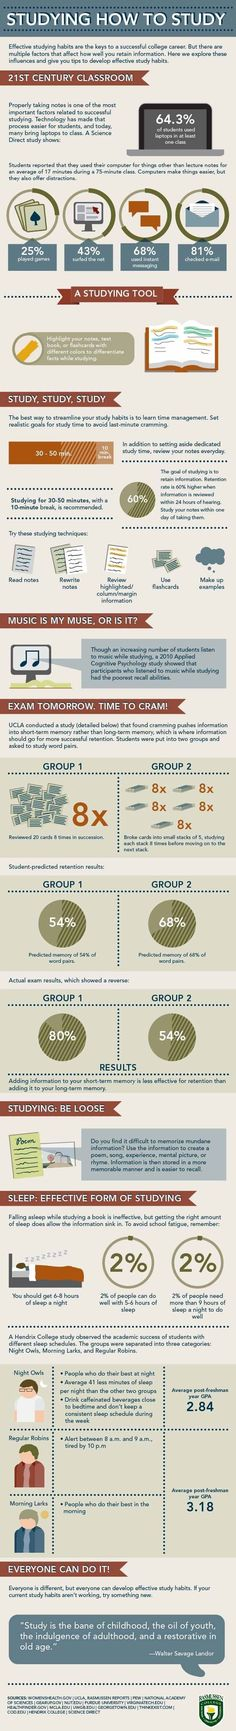 Estudiando como estudiar #infografia #infographic #education